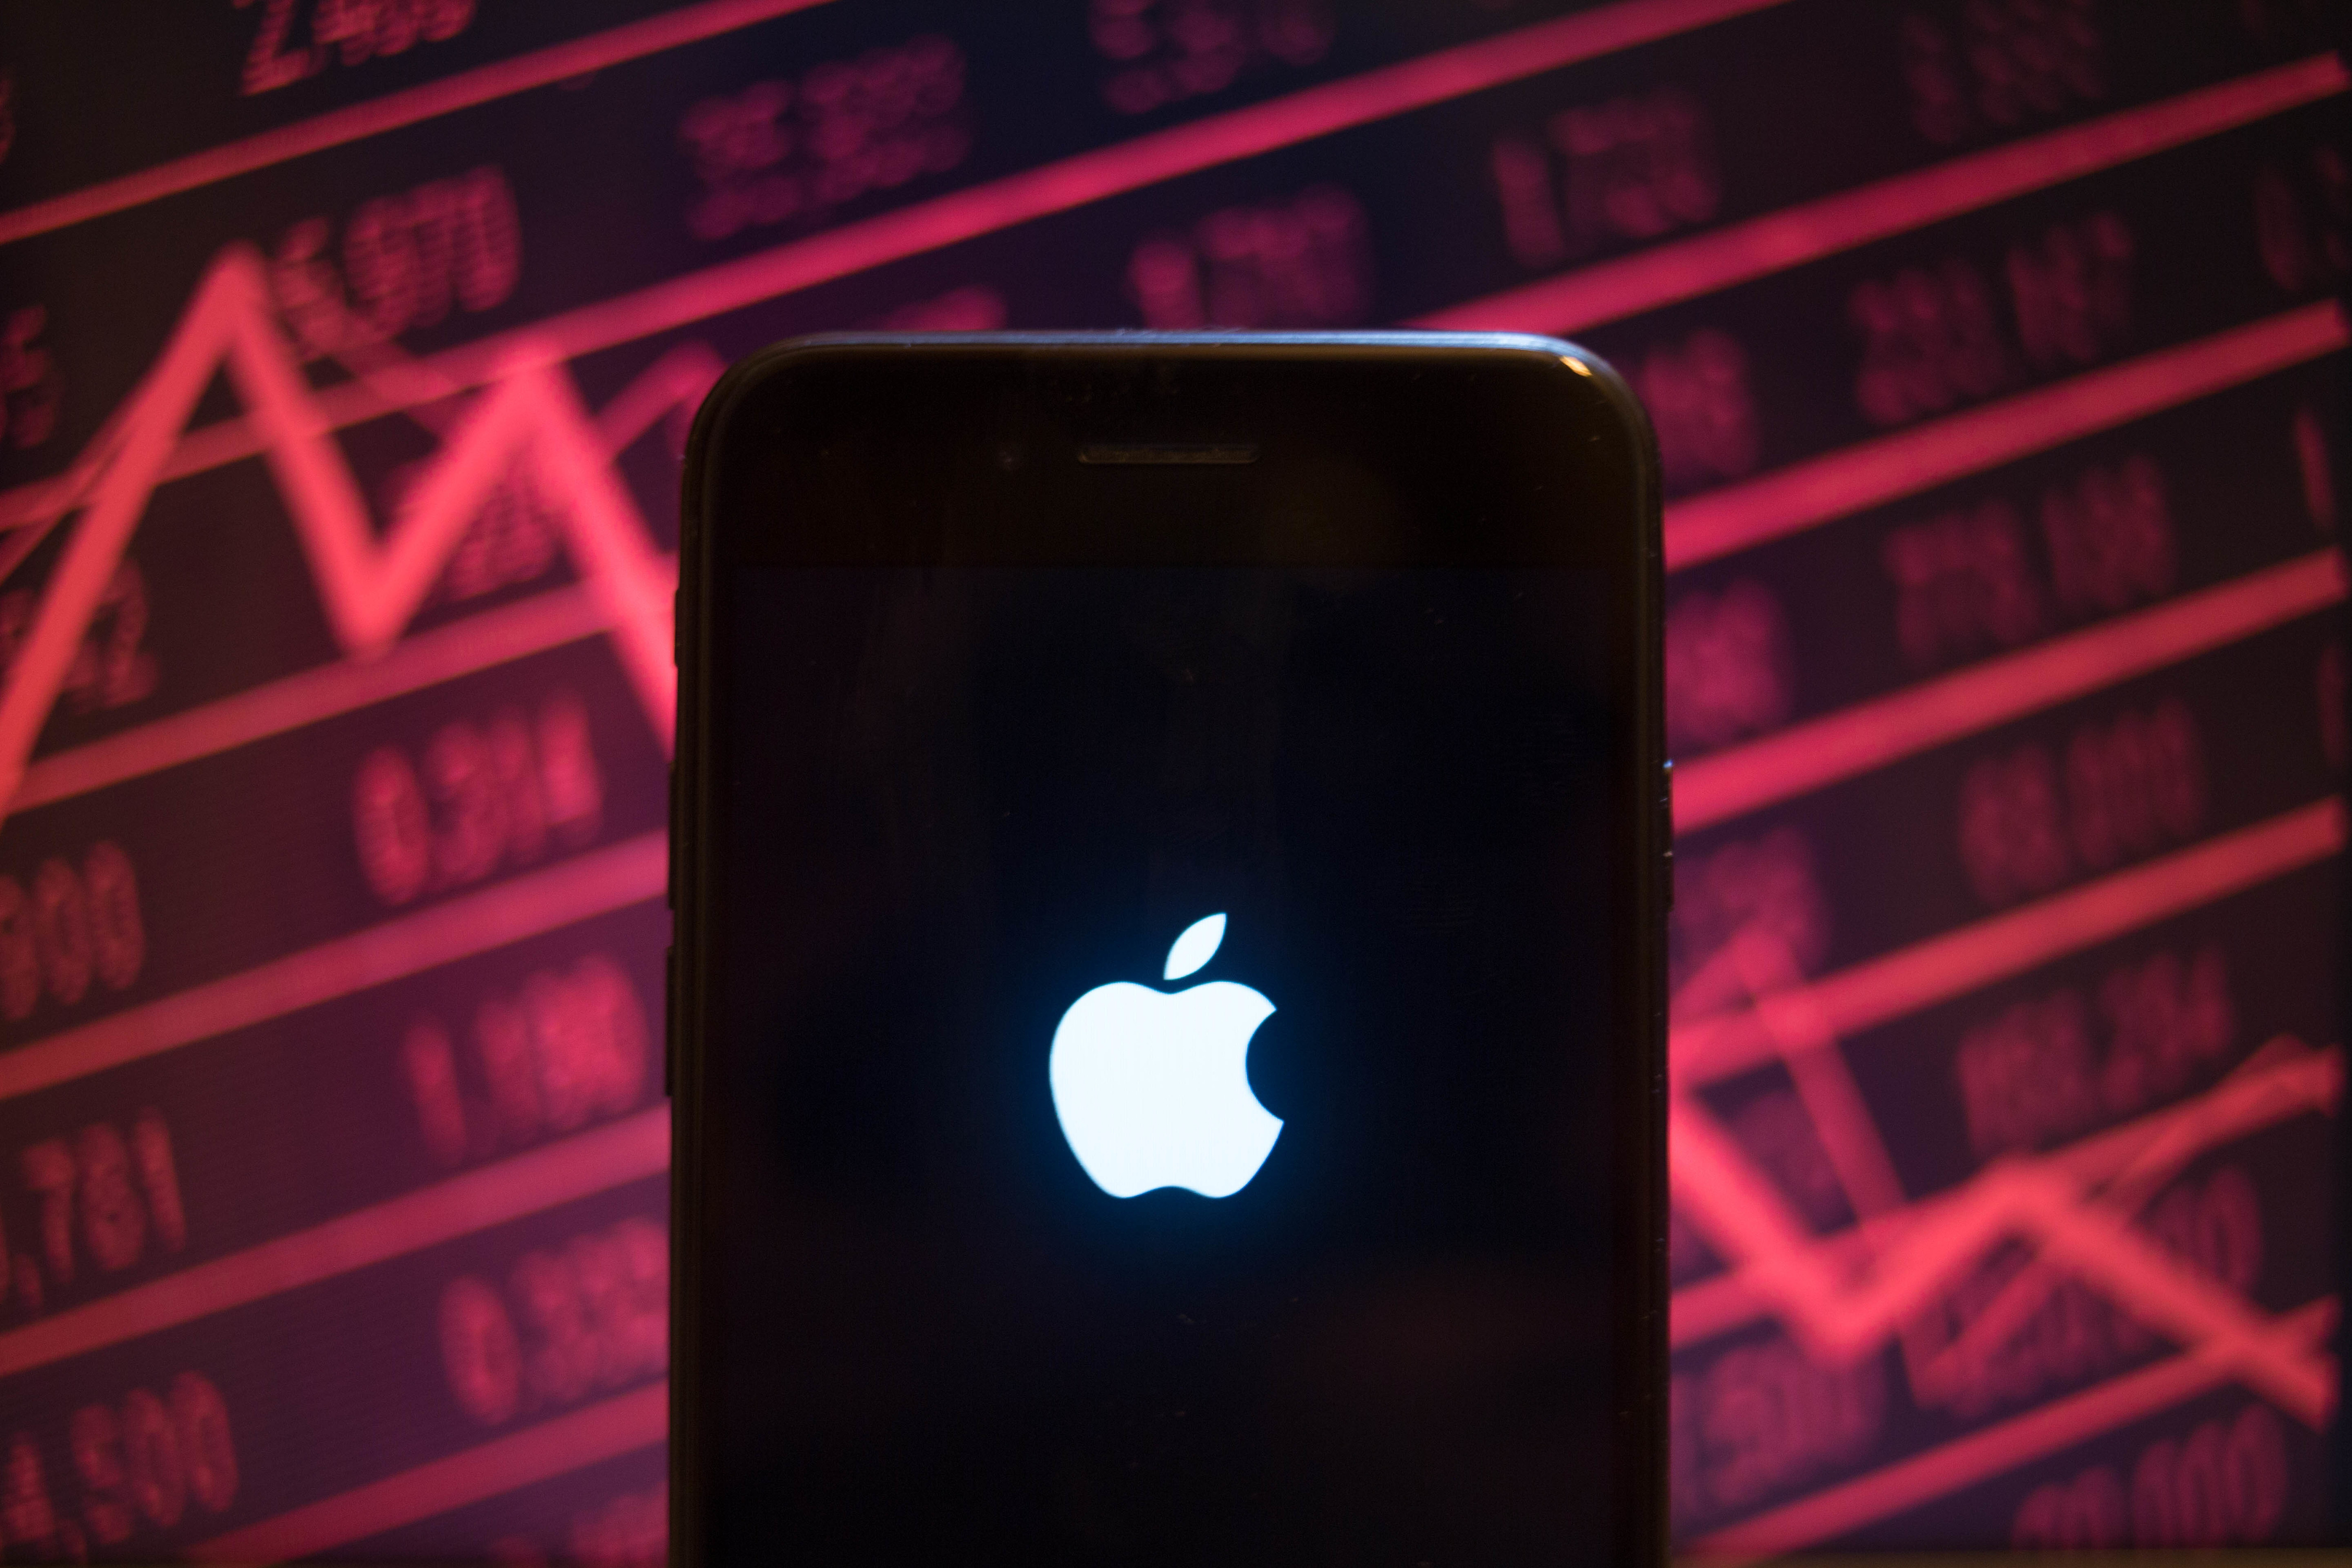 An iPhone displays the Apple logo with a background of a